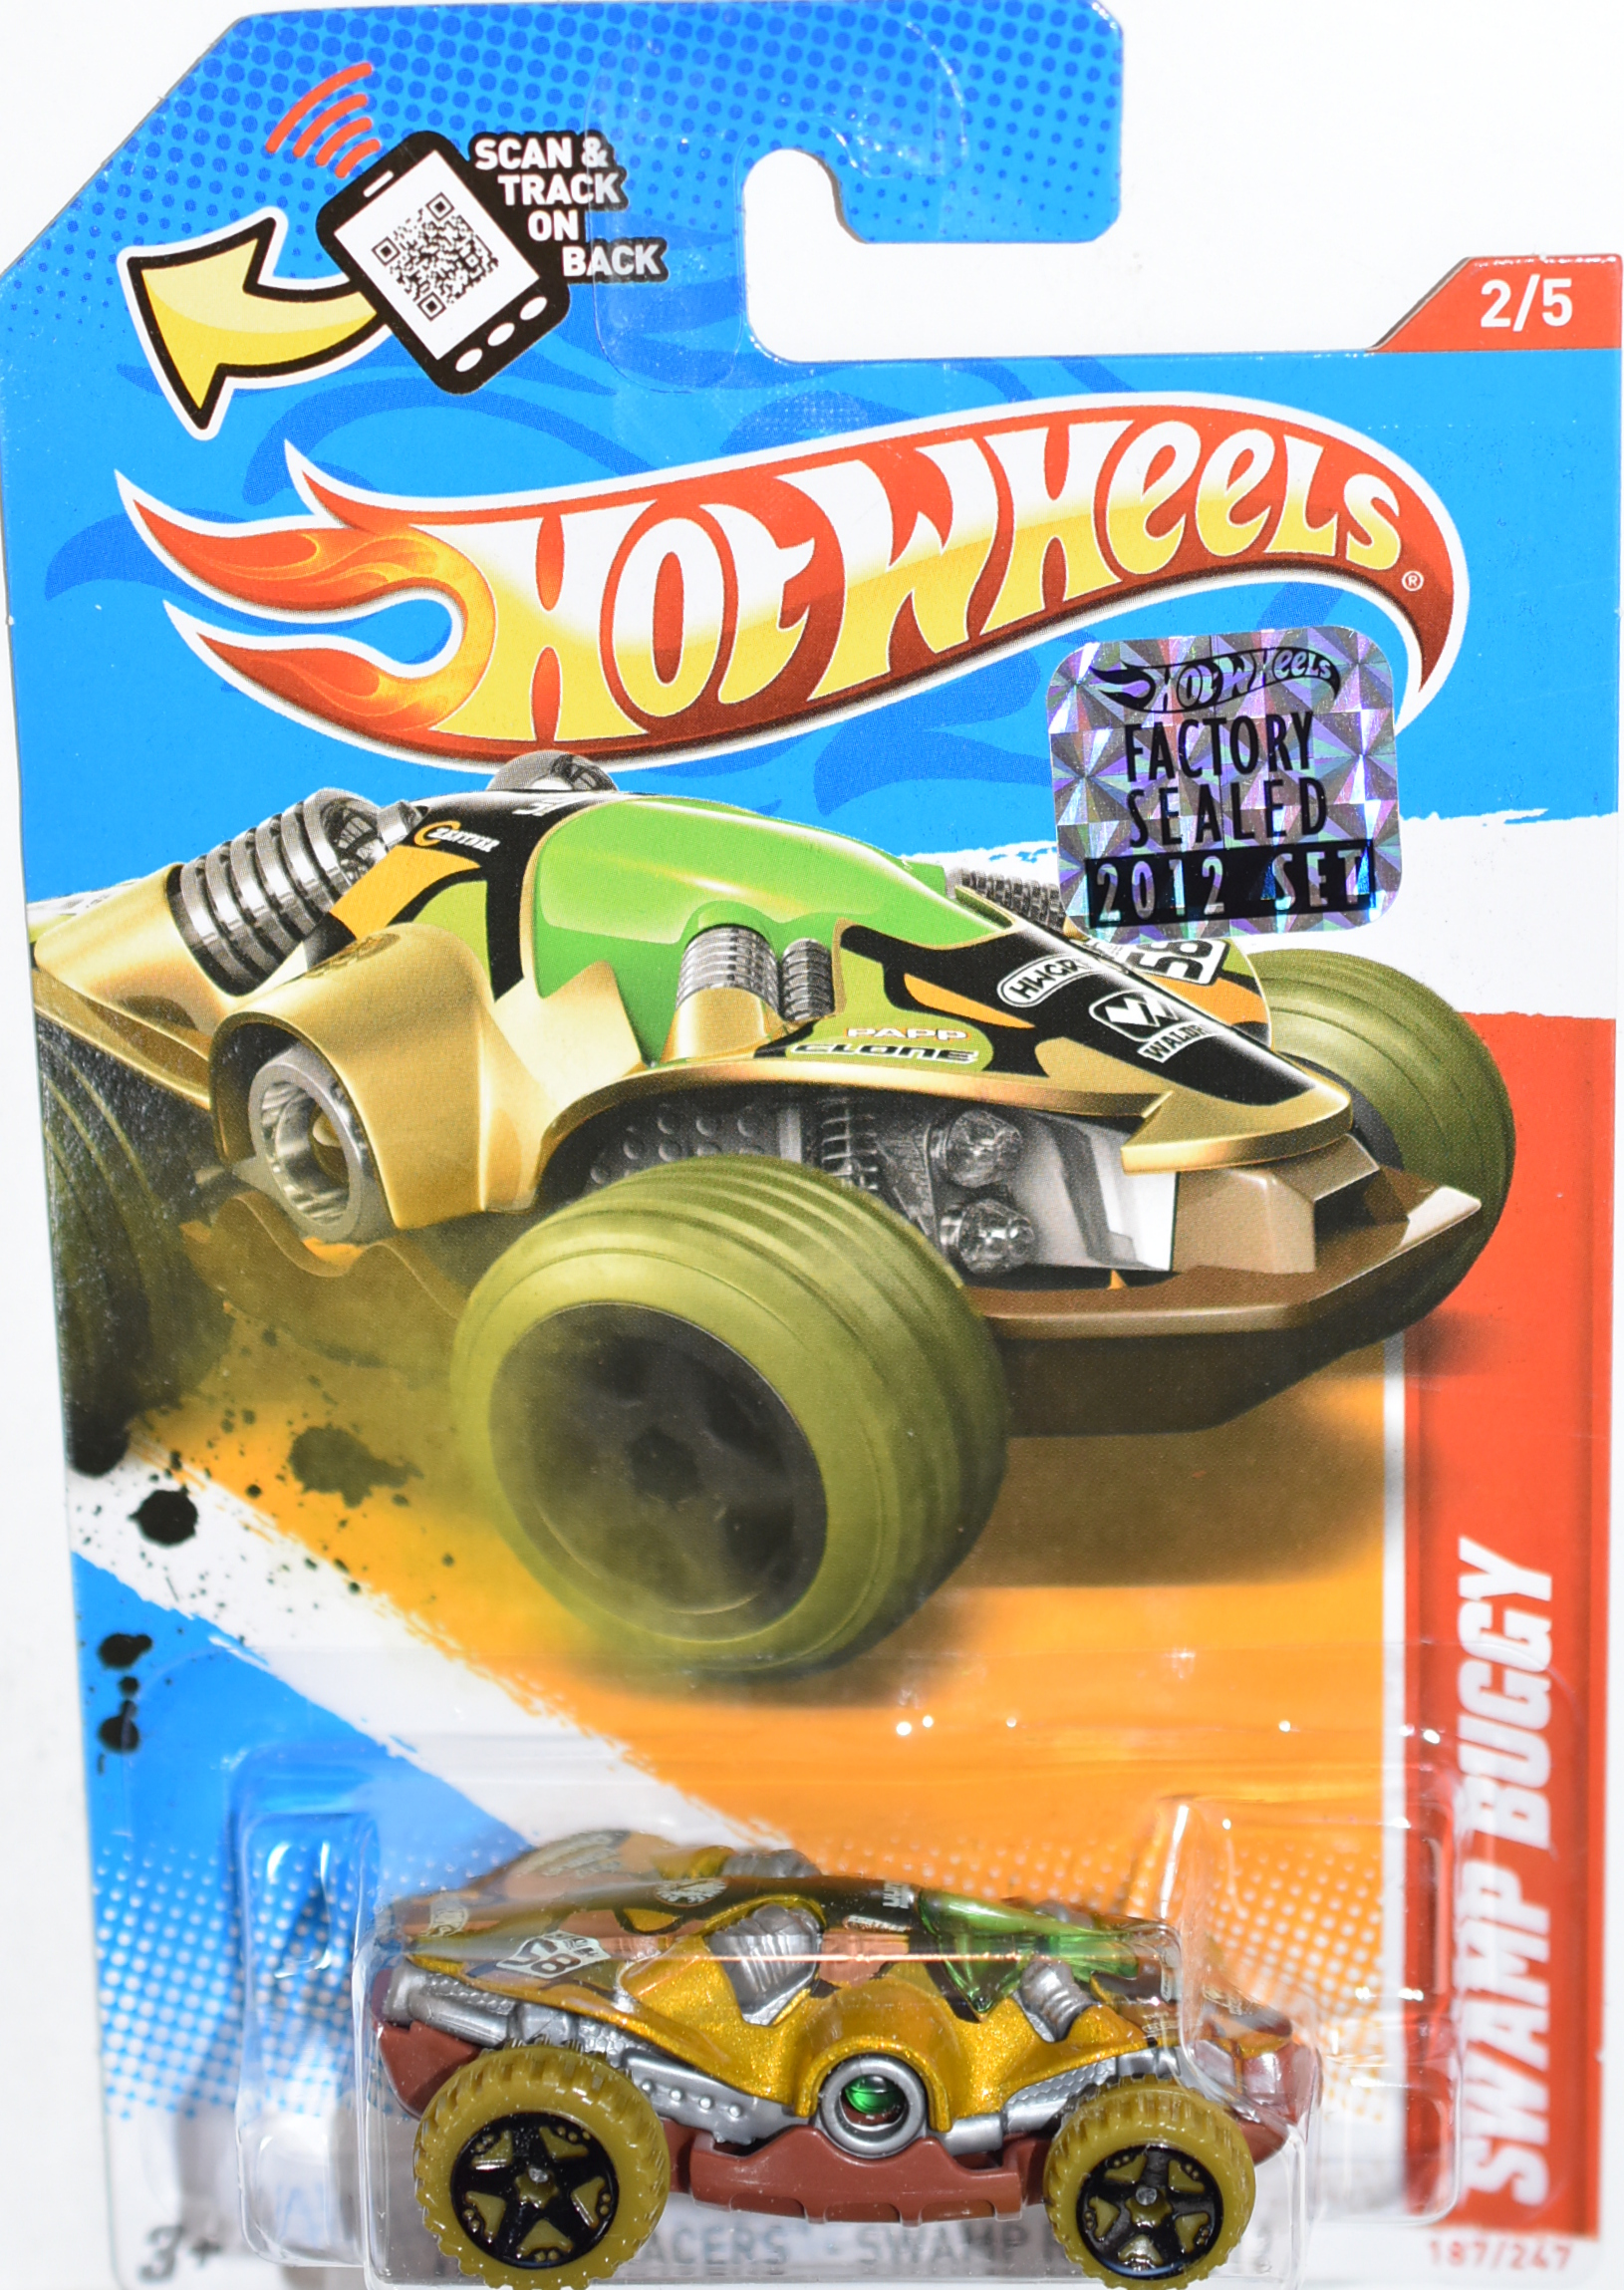 HOT WHEELS 2012 SWAMP BUGGY FACTORY SEALED